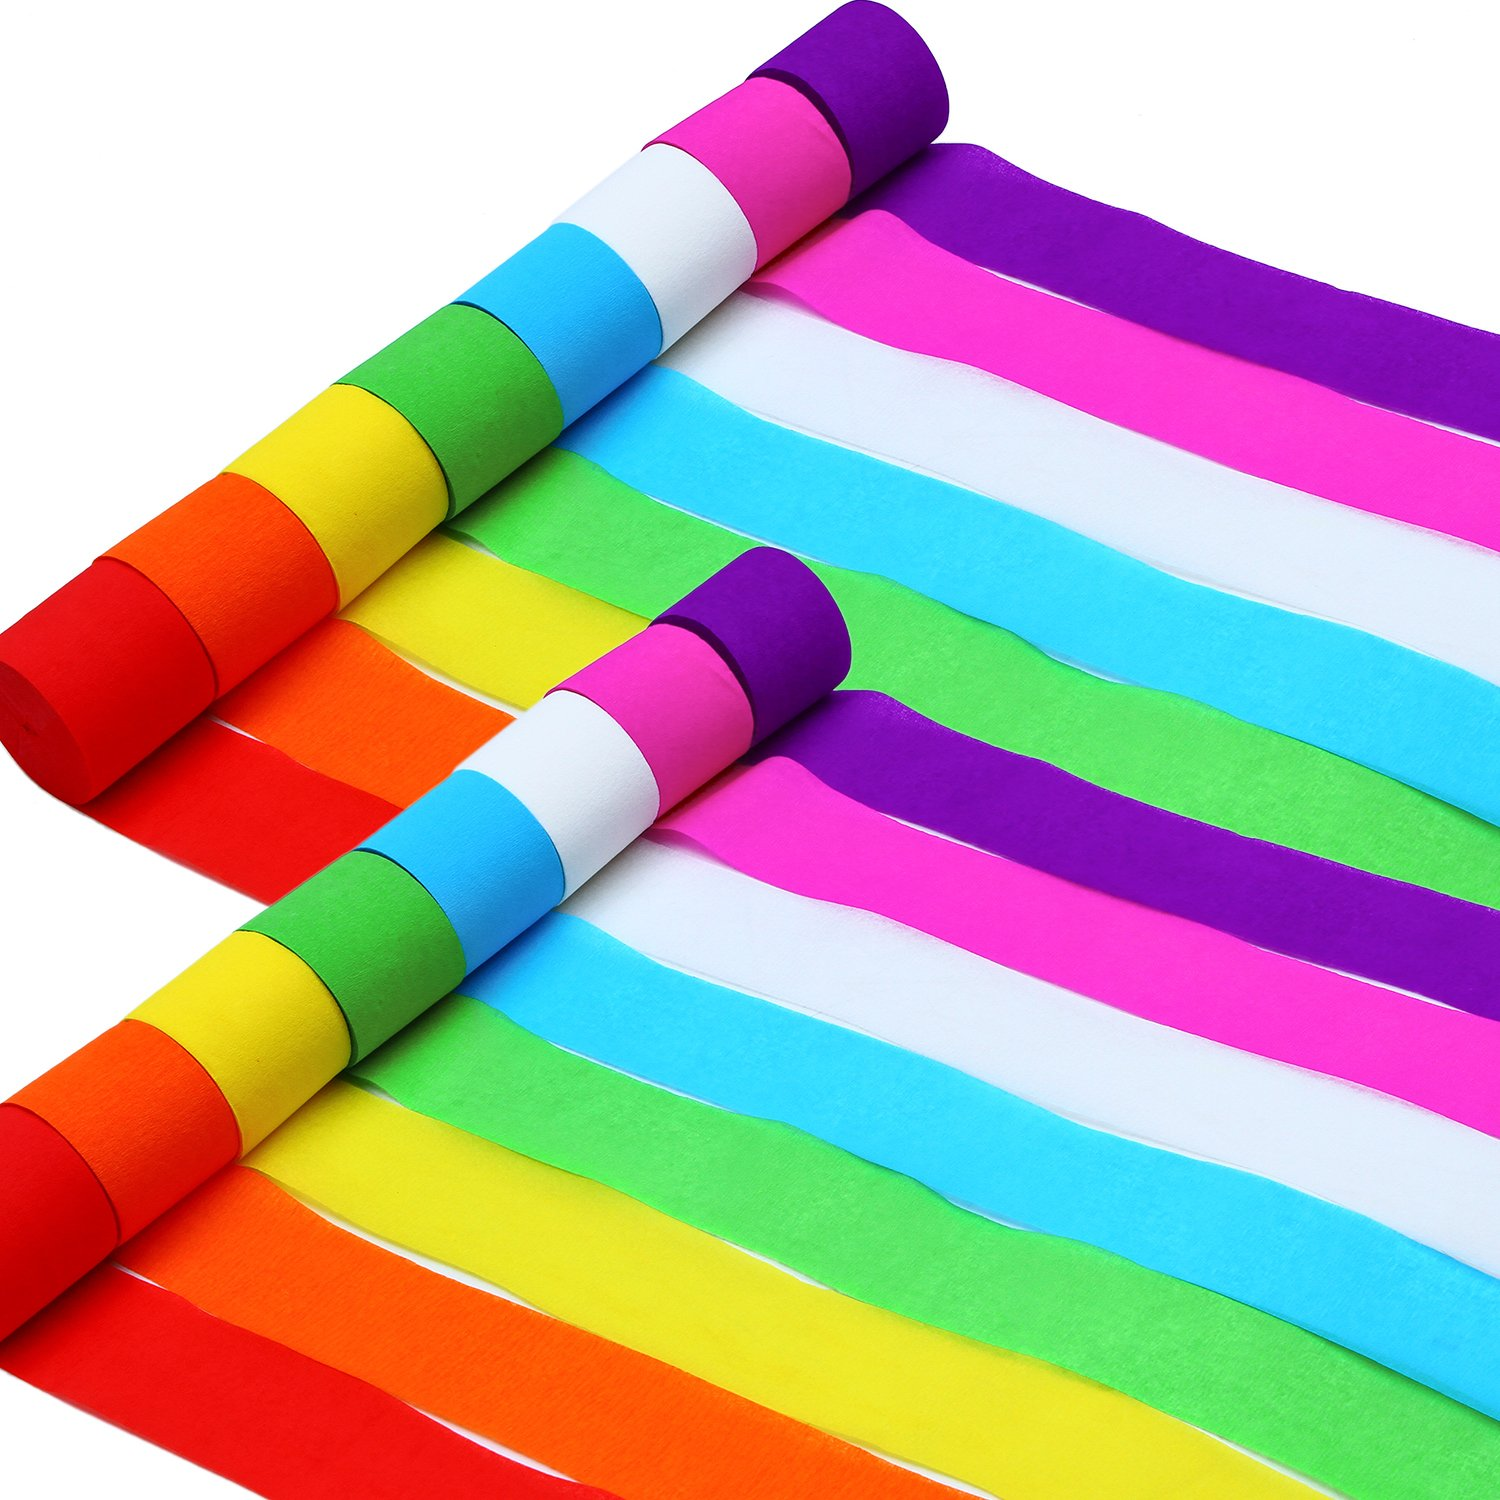 Aneco 92 Feet 16 Rolls Crepe Paper Streamers Party Streamer Paper Decorations Assorted Colors for Birthday Party Wedding Concert and Various Festivals (Set A)